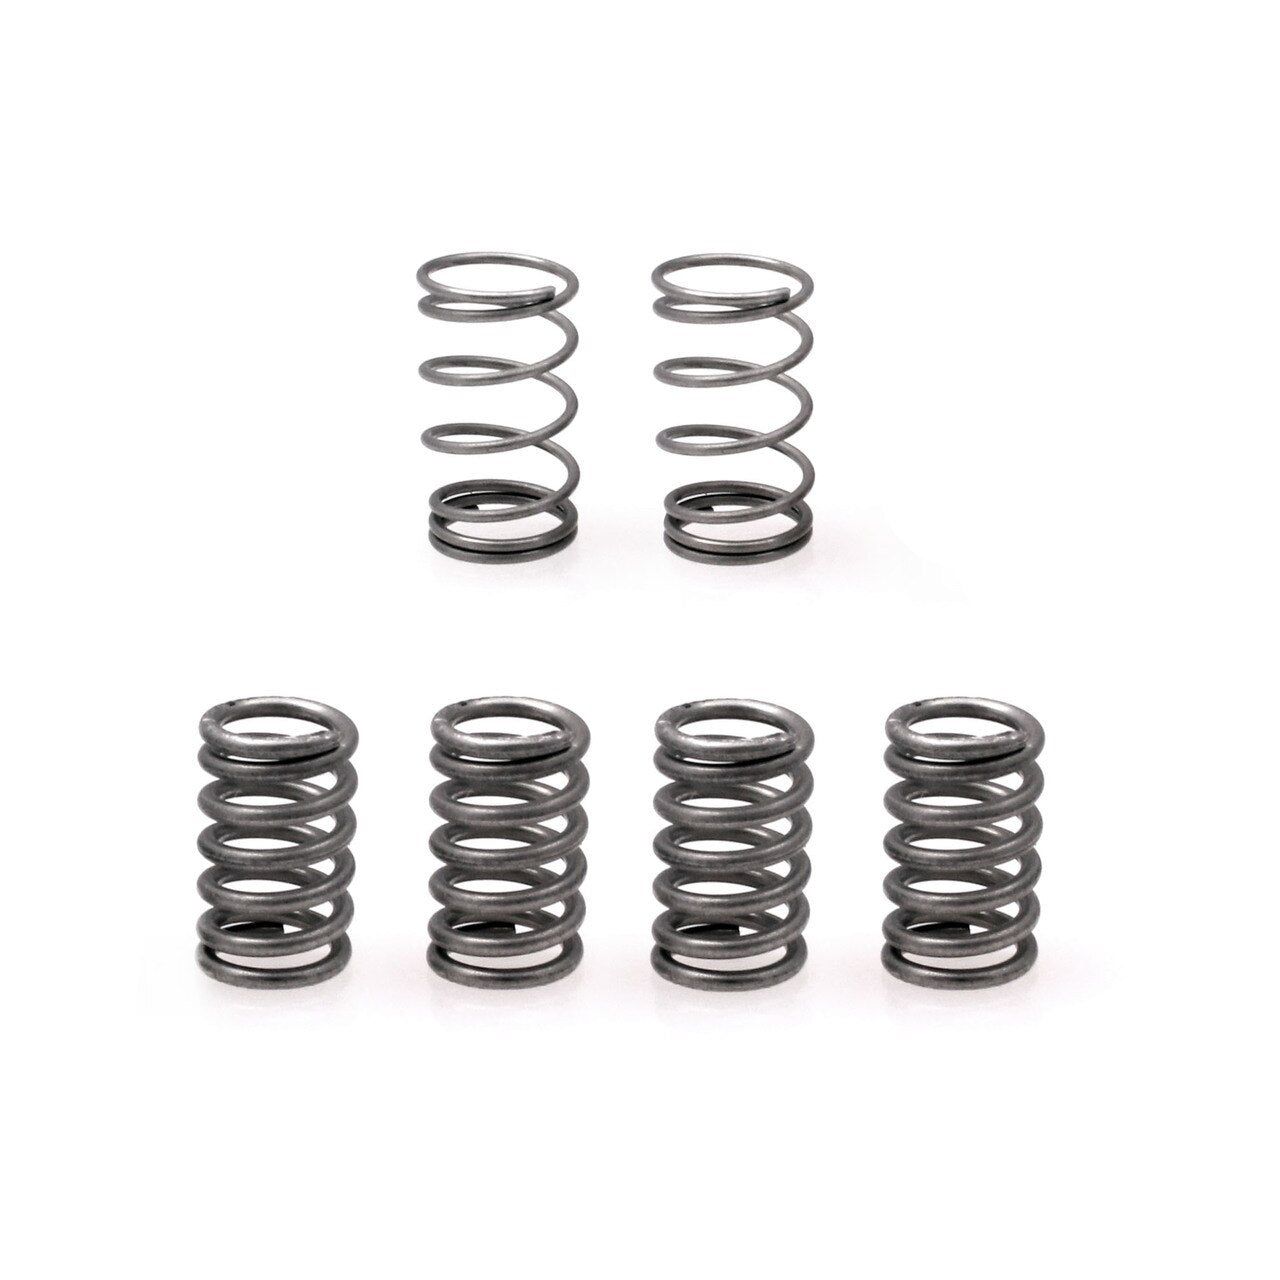 Spare Springs for the Ark Z-Vibe or Z-Grabber (6 Pack)